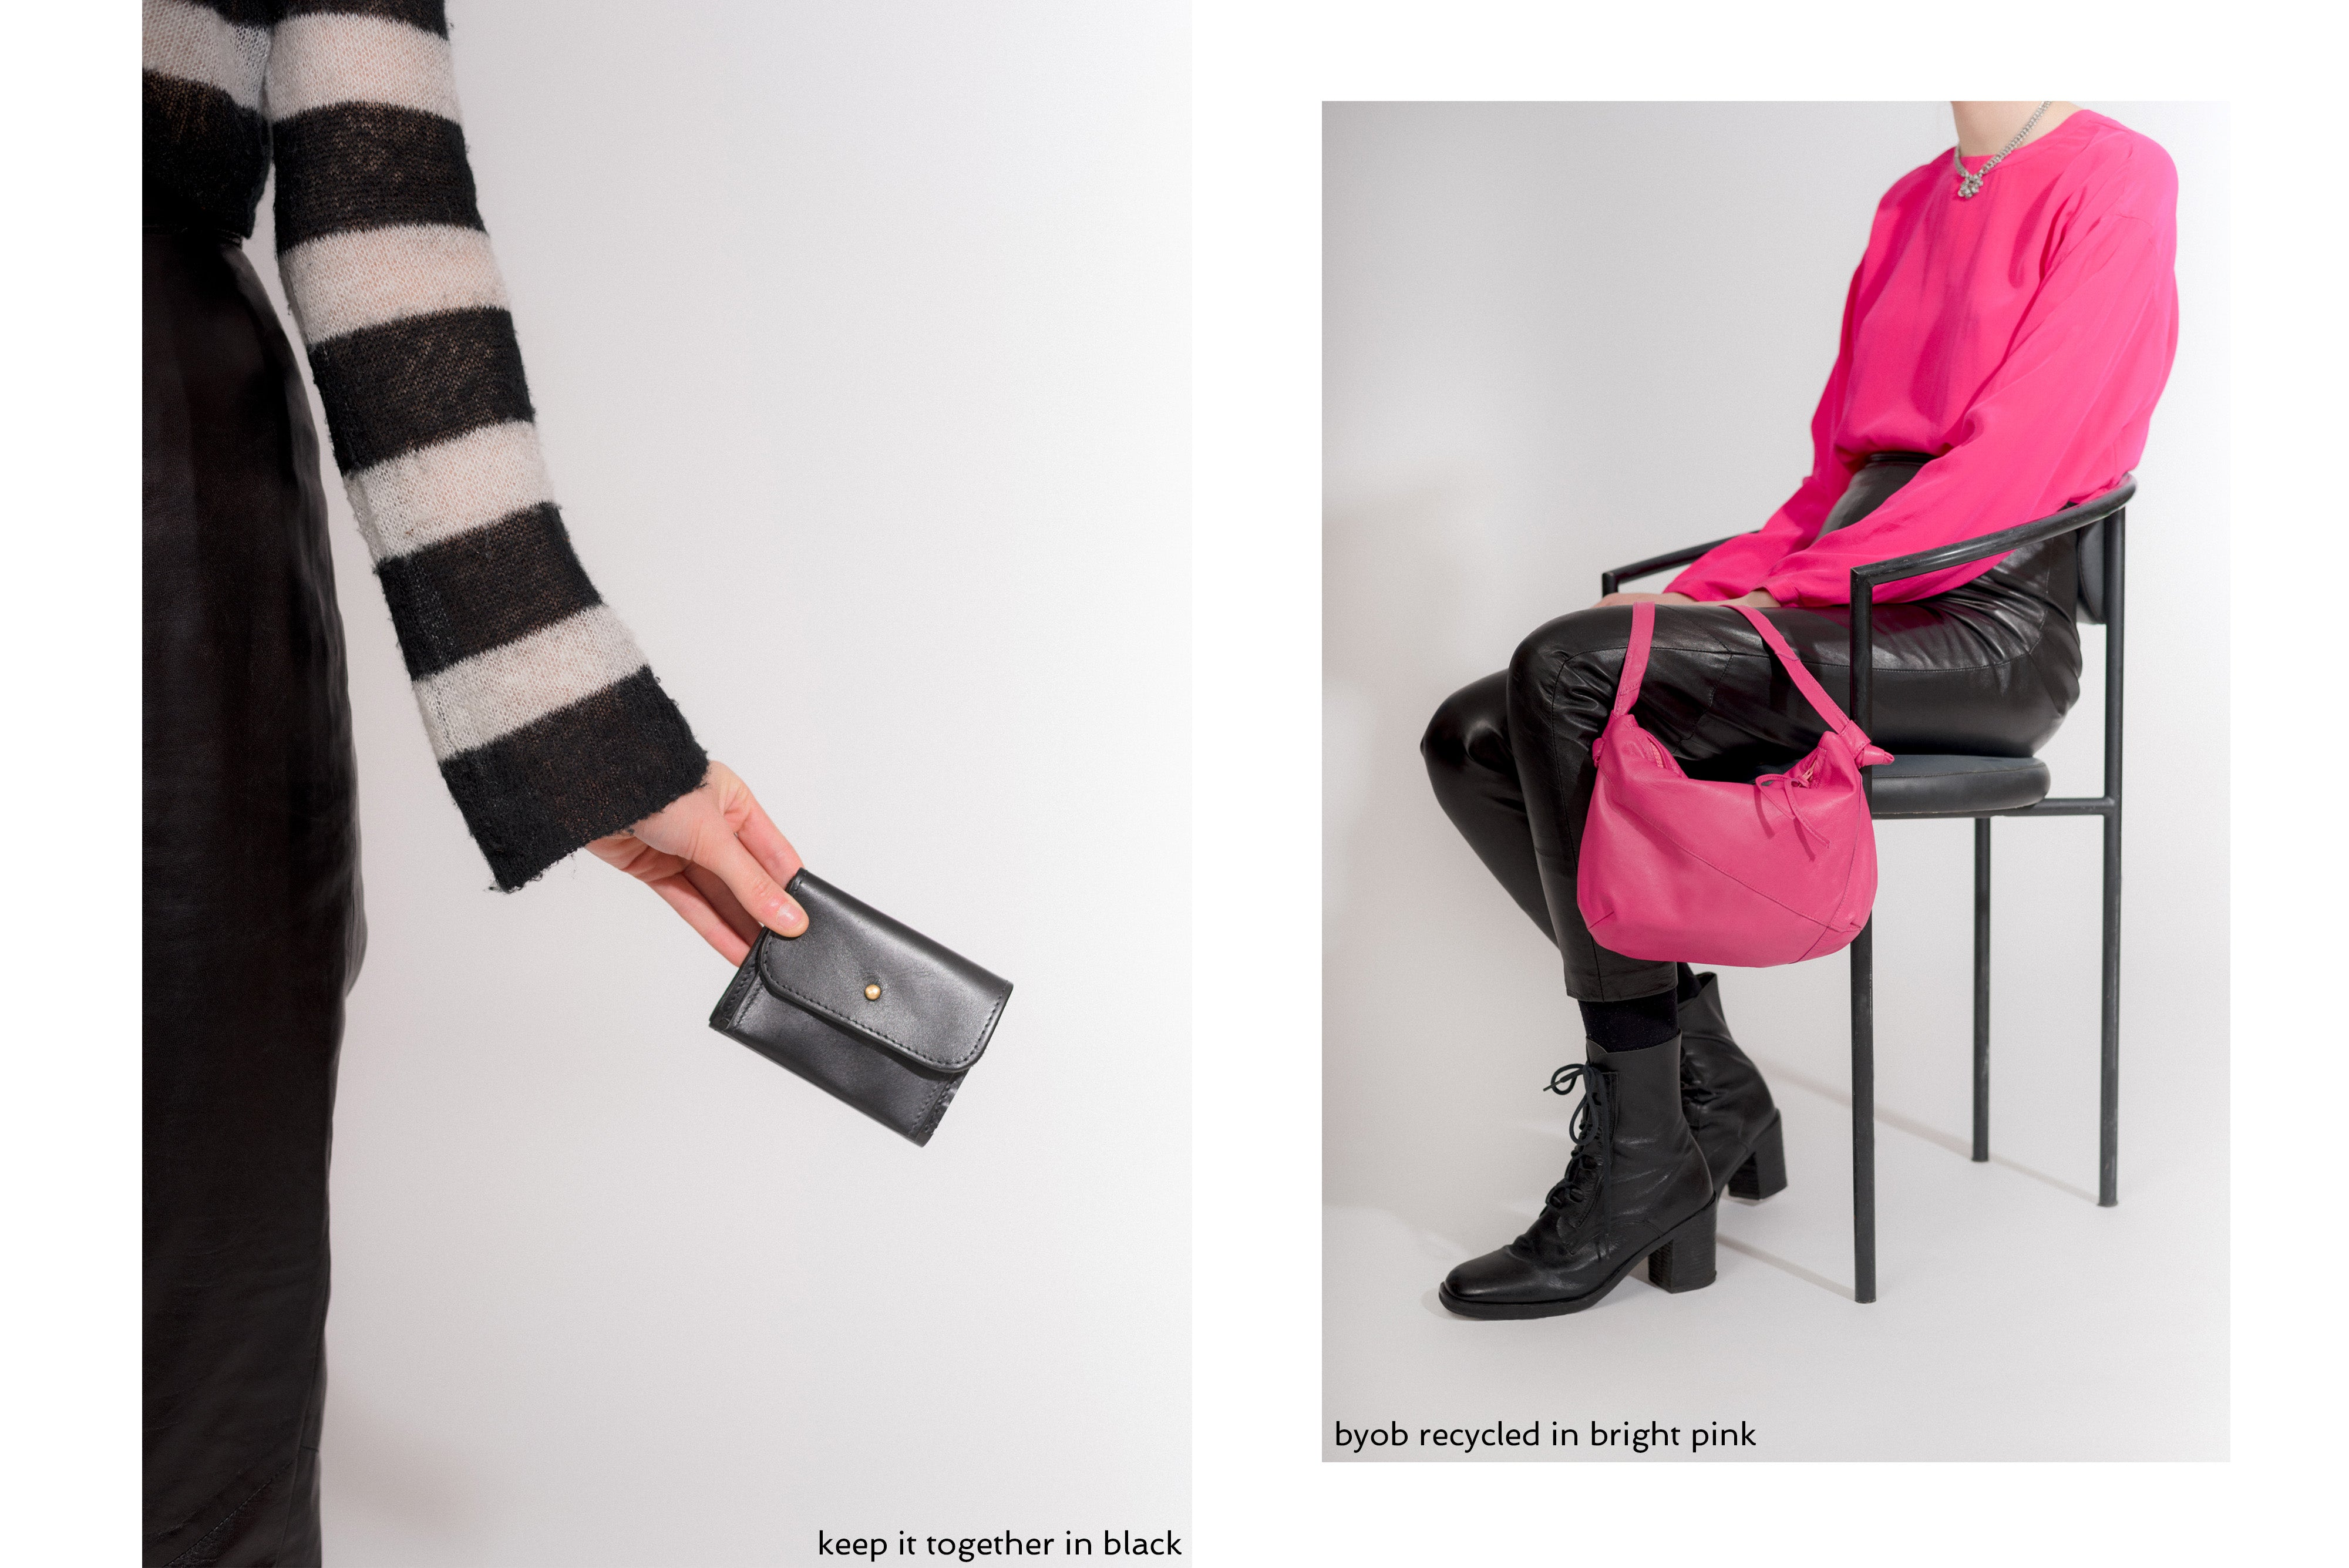 erin templeton - fw2020 - keep it together and byob recycled